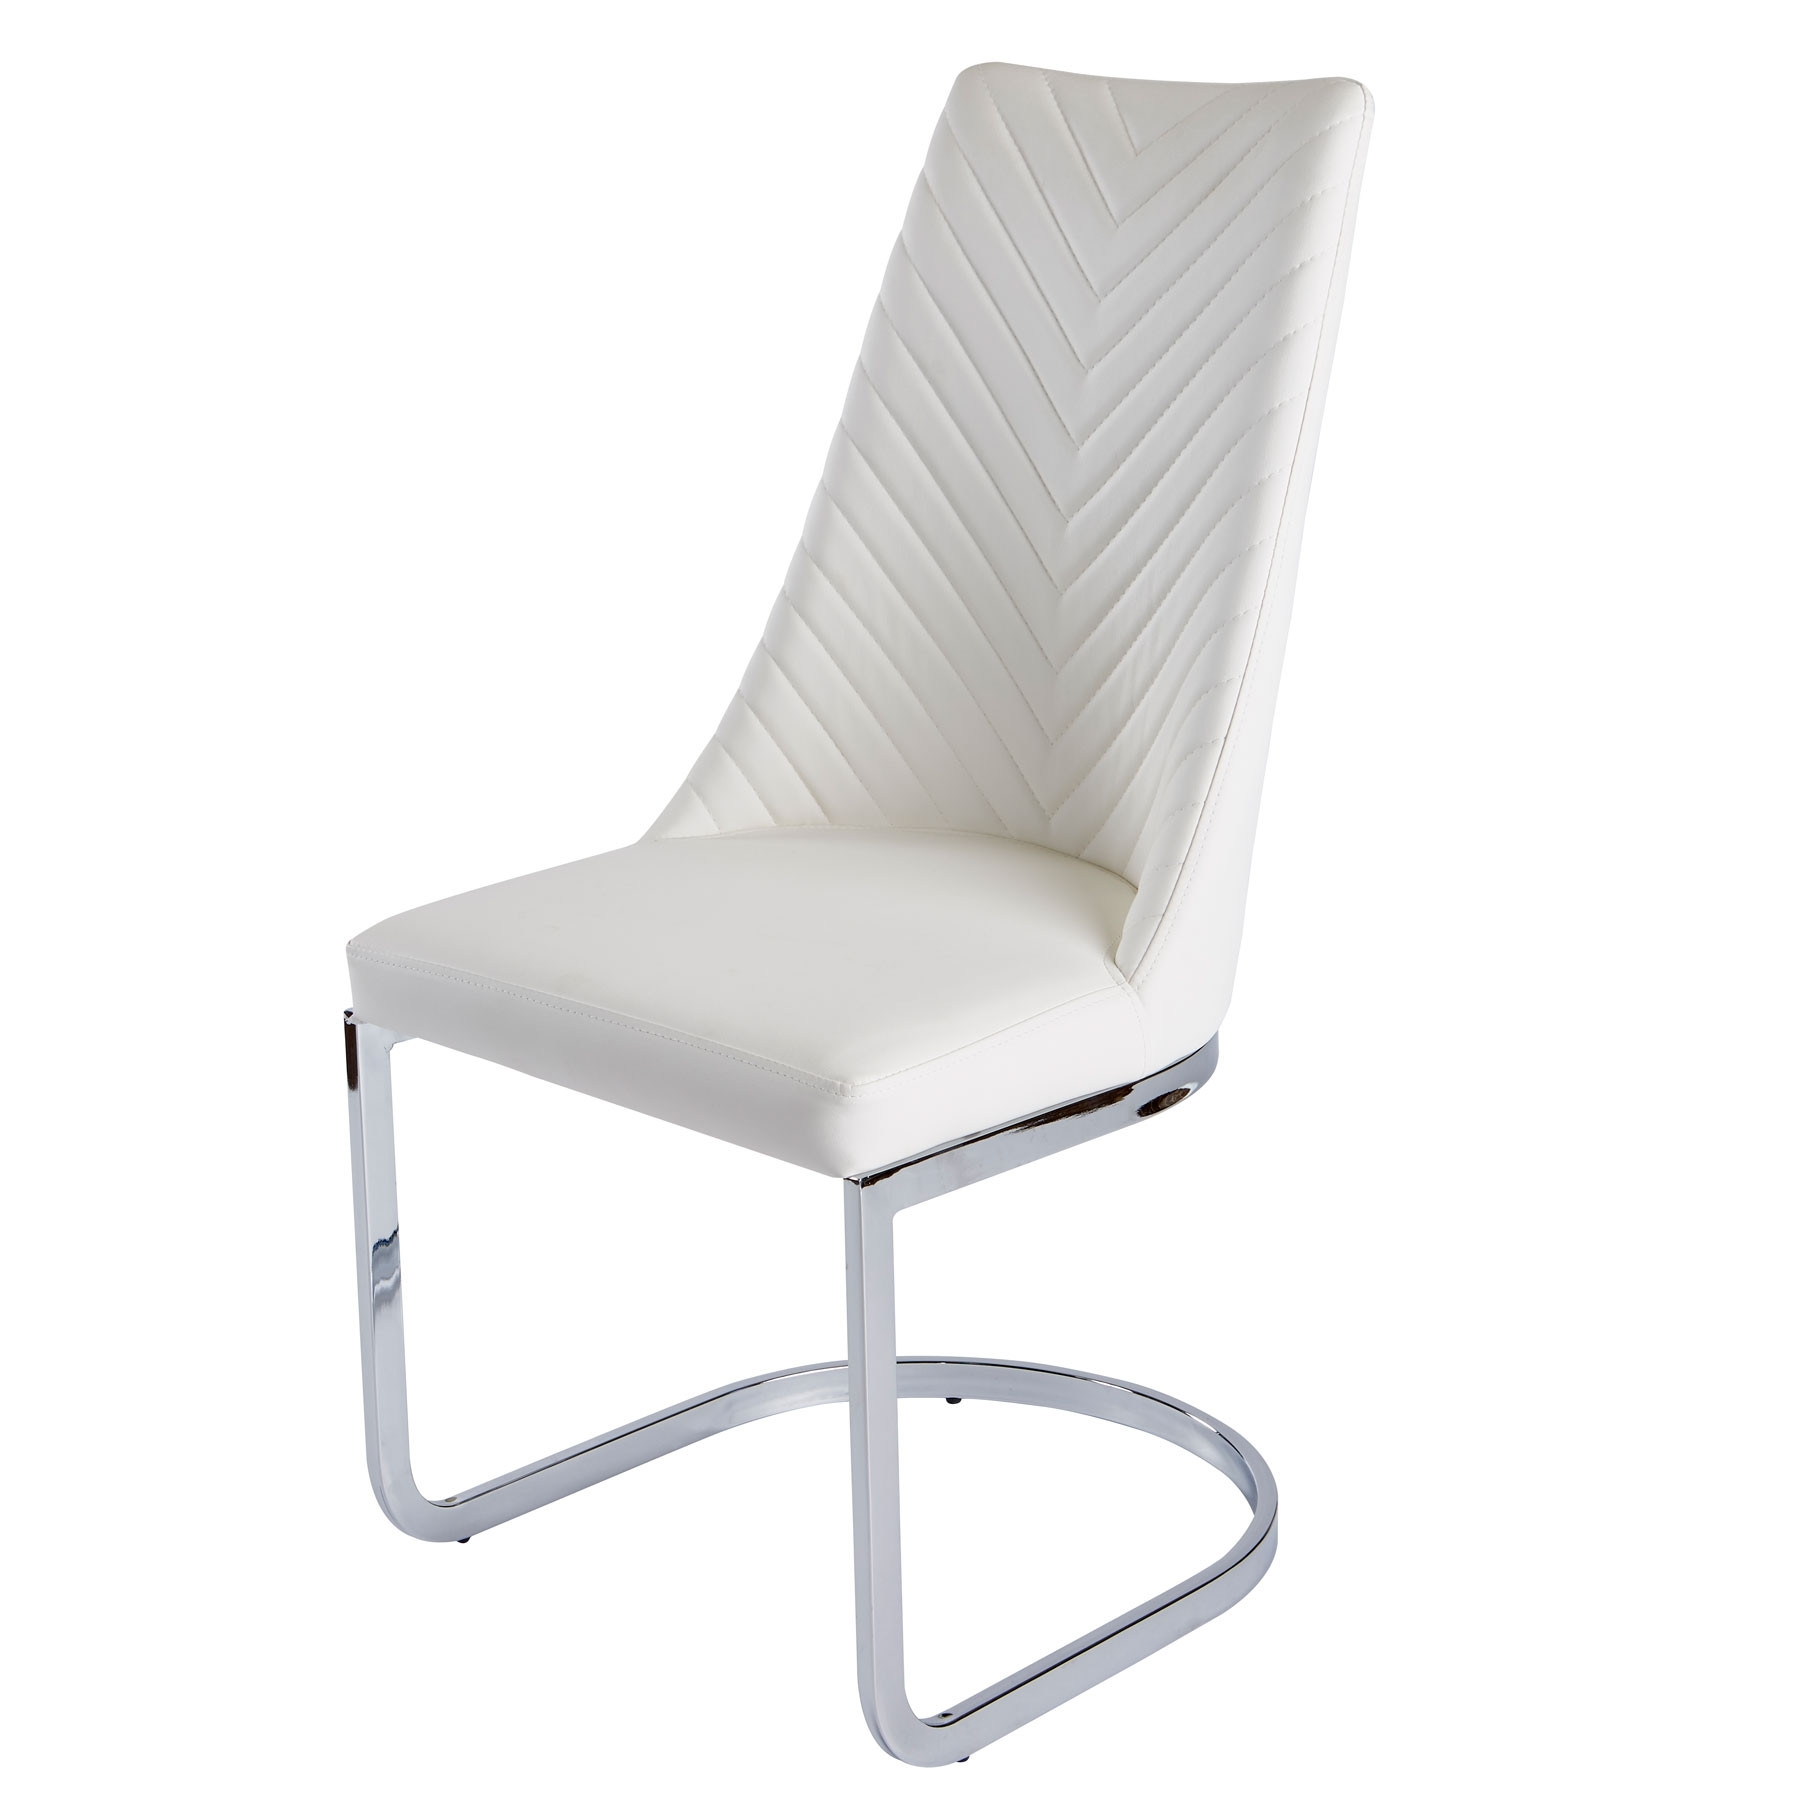 Camber White Dining Chair For Well Known White Dining Chairs (Gallery 5 of 25)